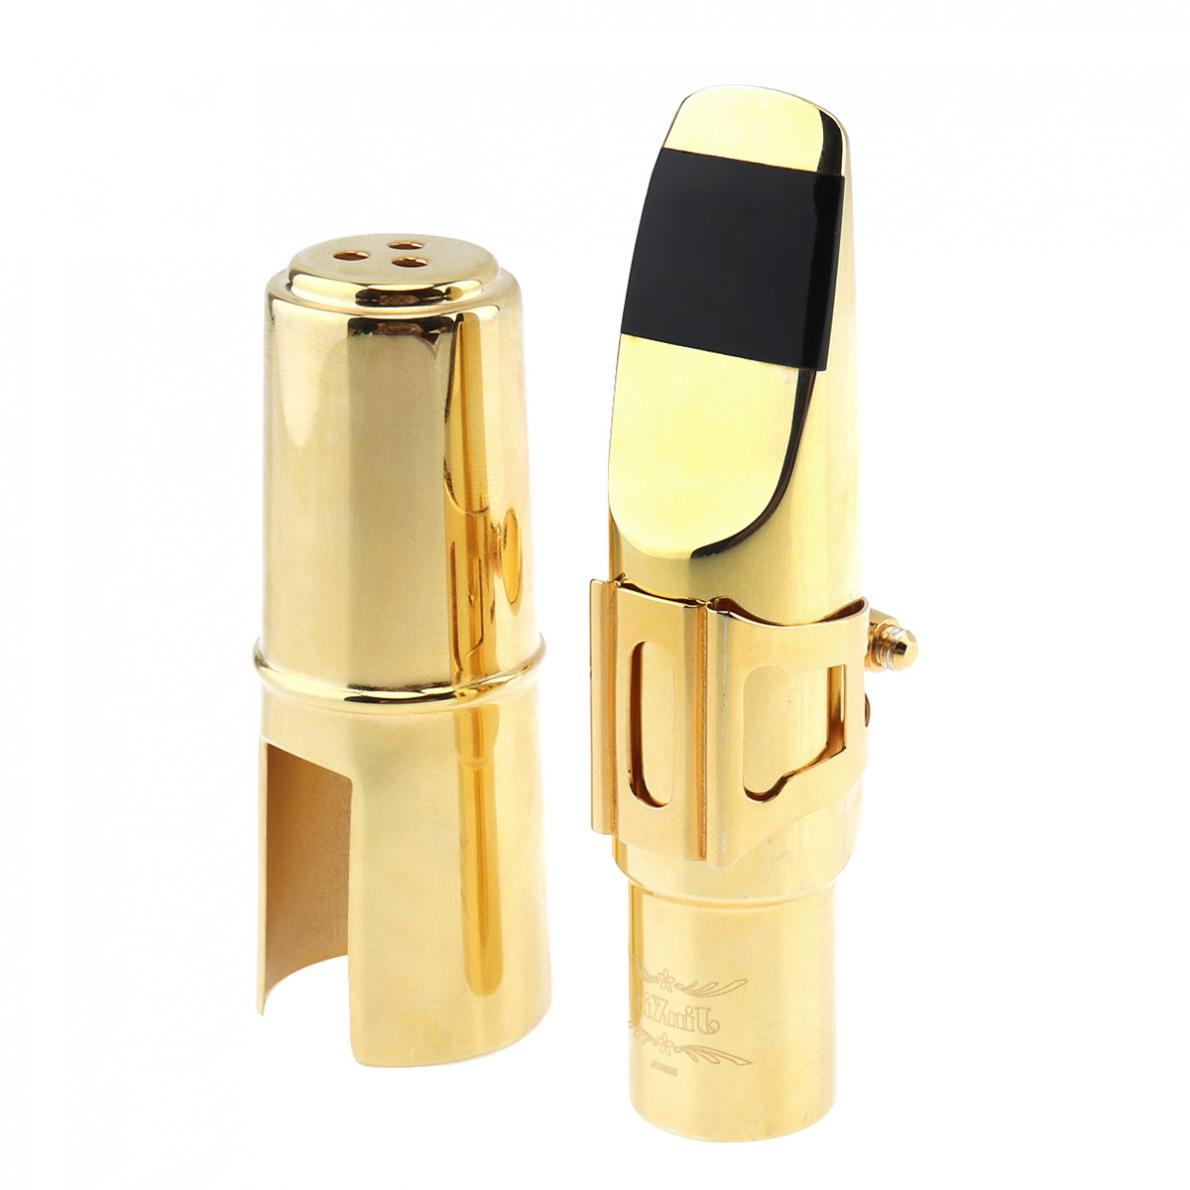 Soprano bB Saxophone Mouthpiece Goldplated Copper Brass Sax Mouth Size 6C 7C for Classical Jazz Music  Saxophone Mouthpiece enlarge